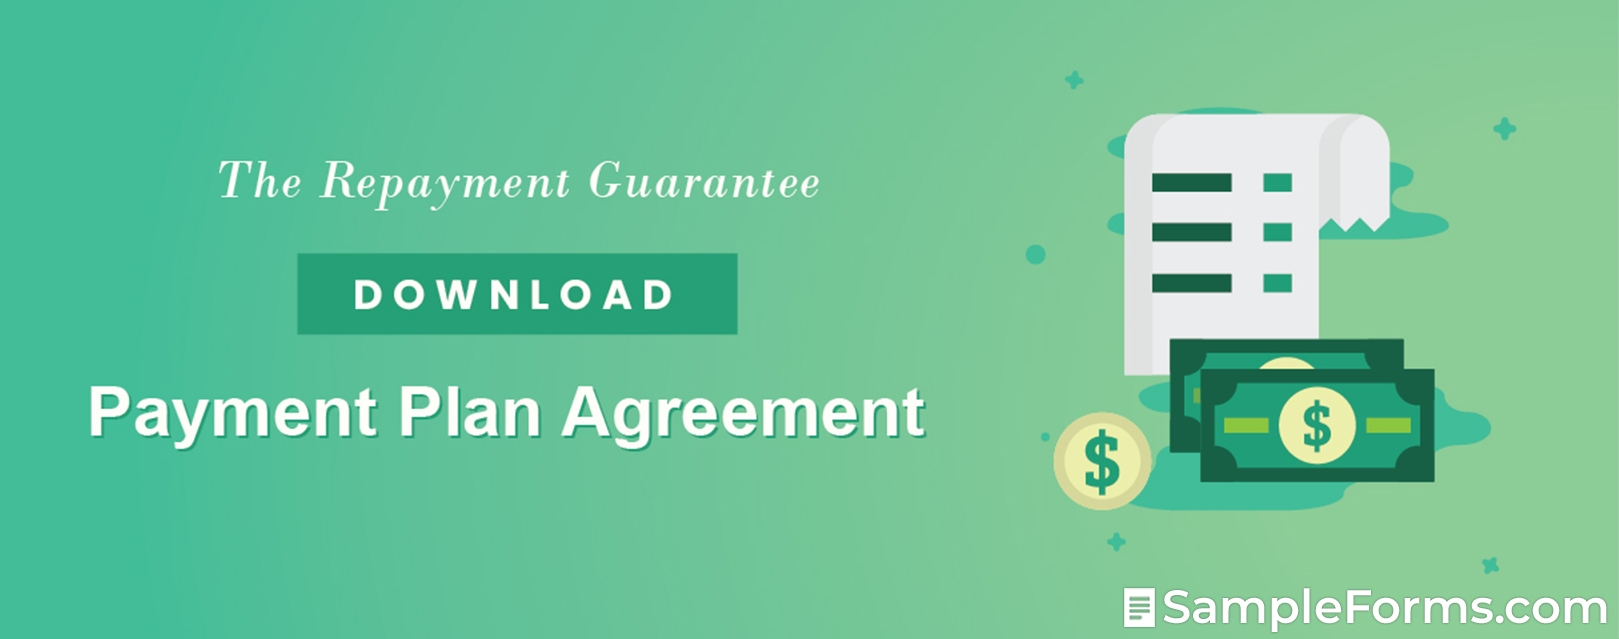 Payment Plan Agreement